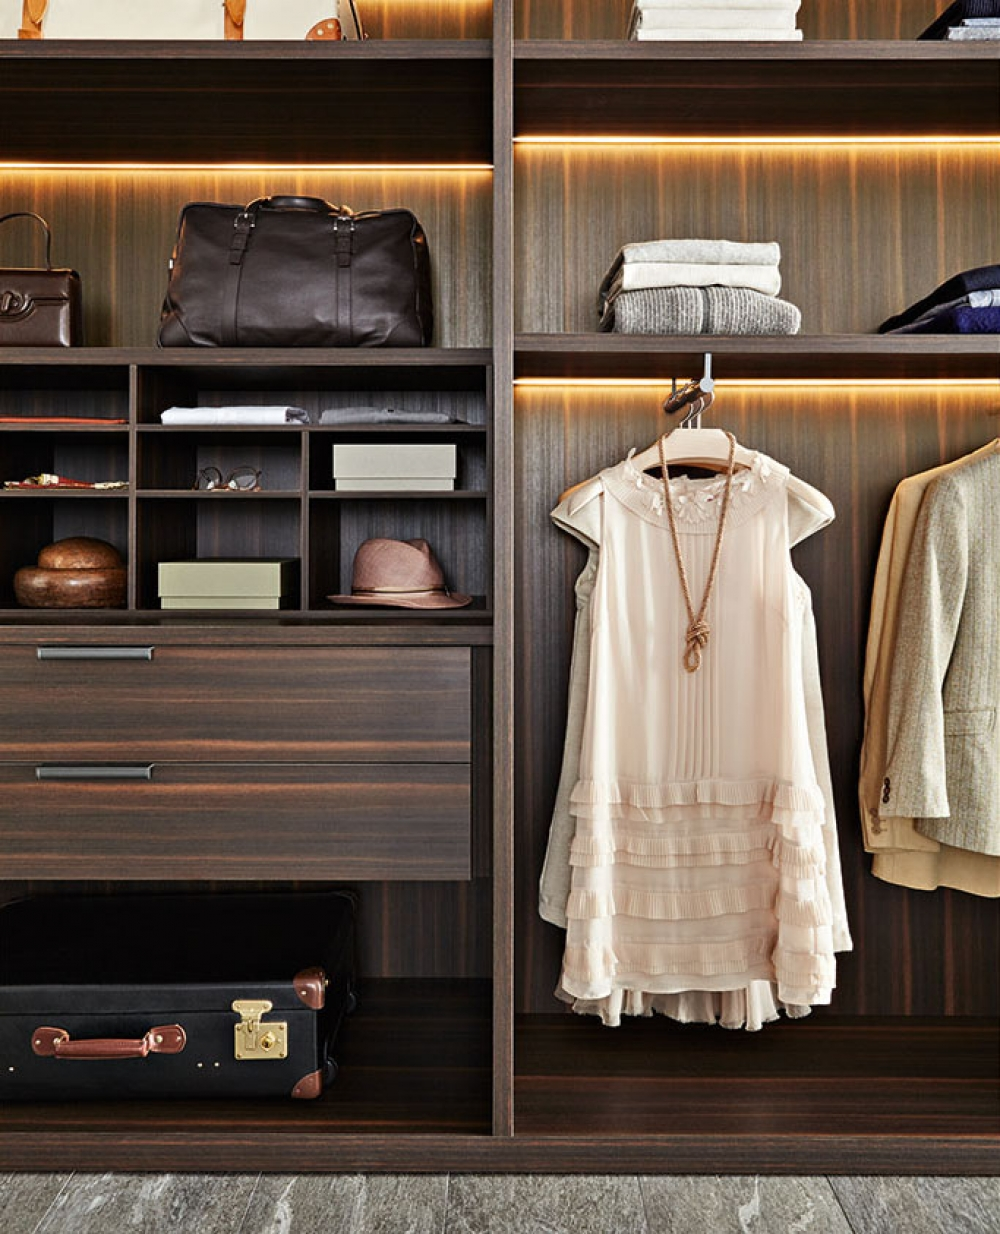 Molteni Gliss Master Walk In Wardrobe Internals